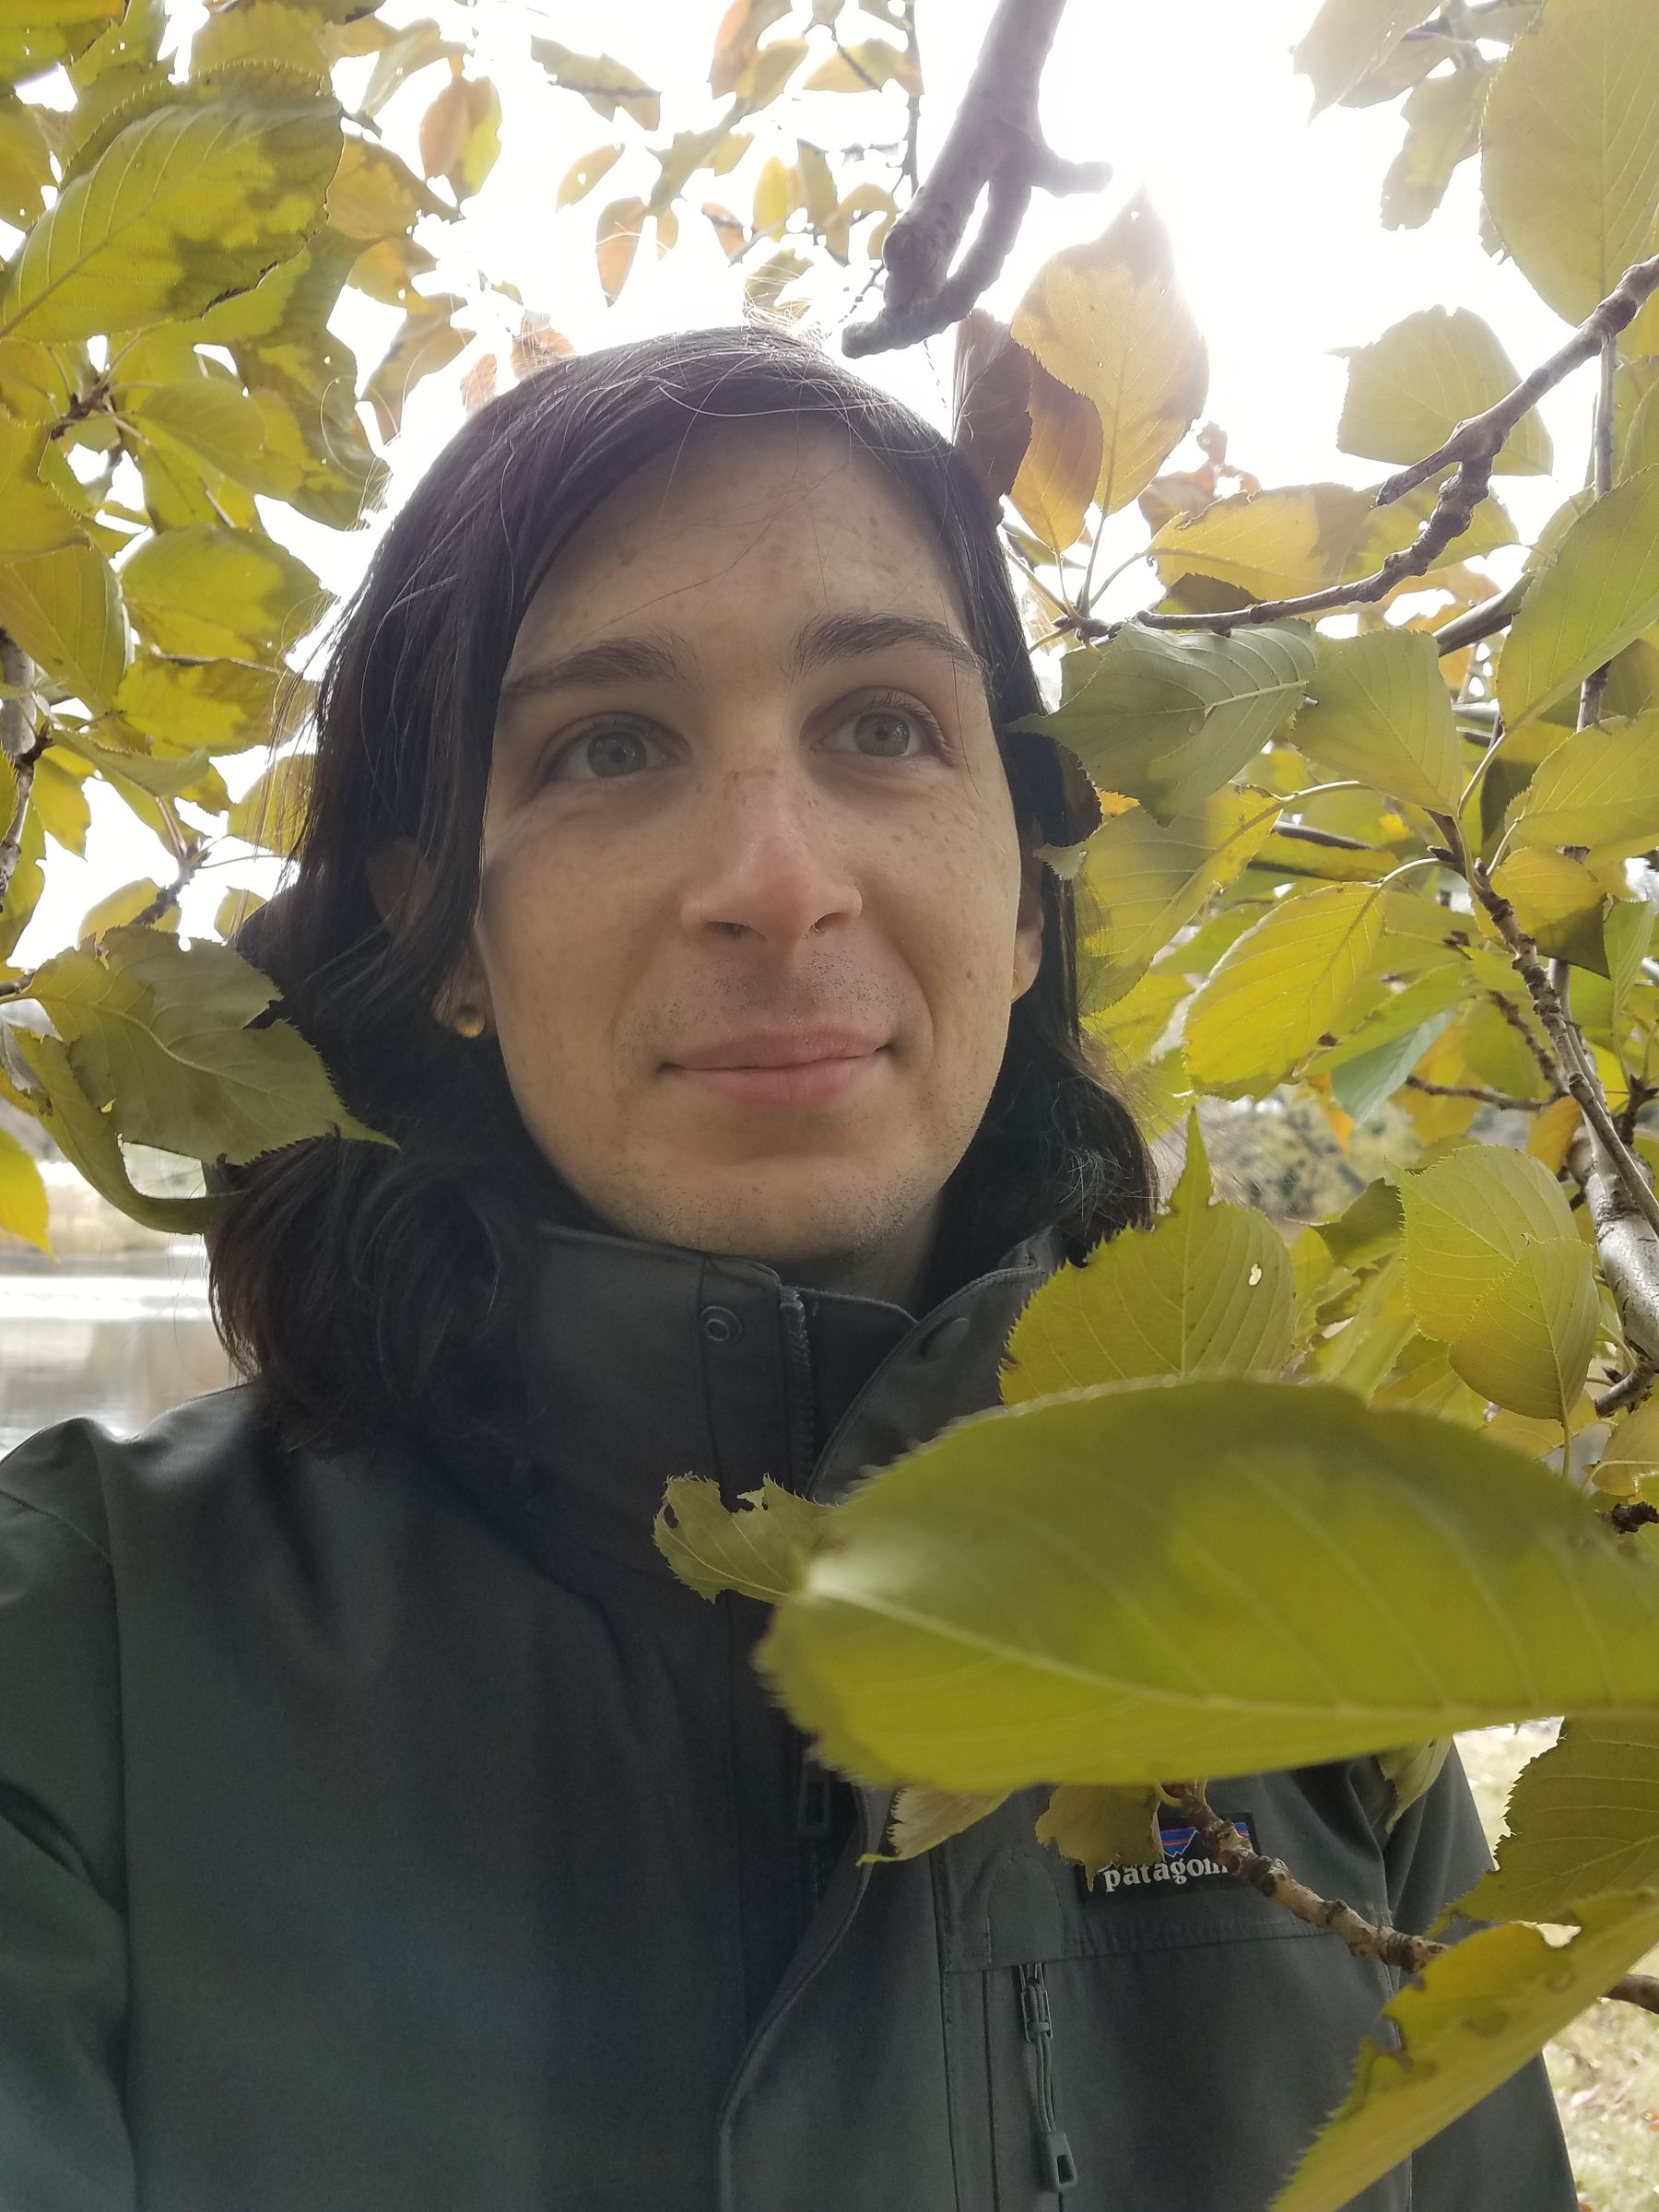 A person in a gray jacket, sitting in some leafy branches, smiling at something behind the camera.